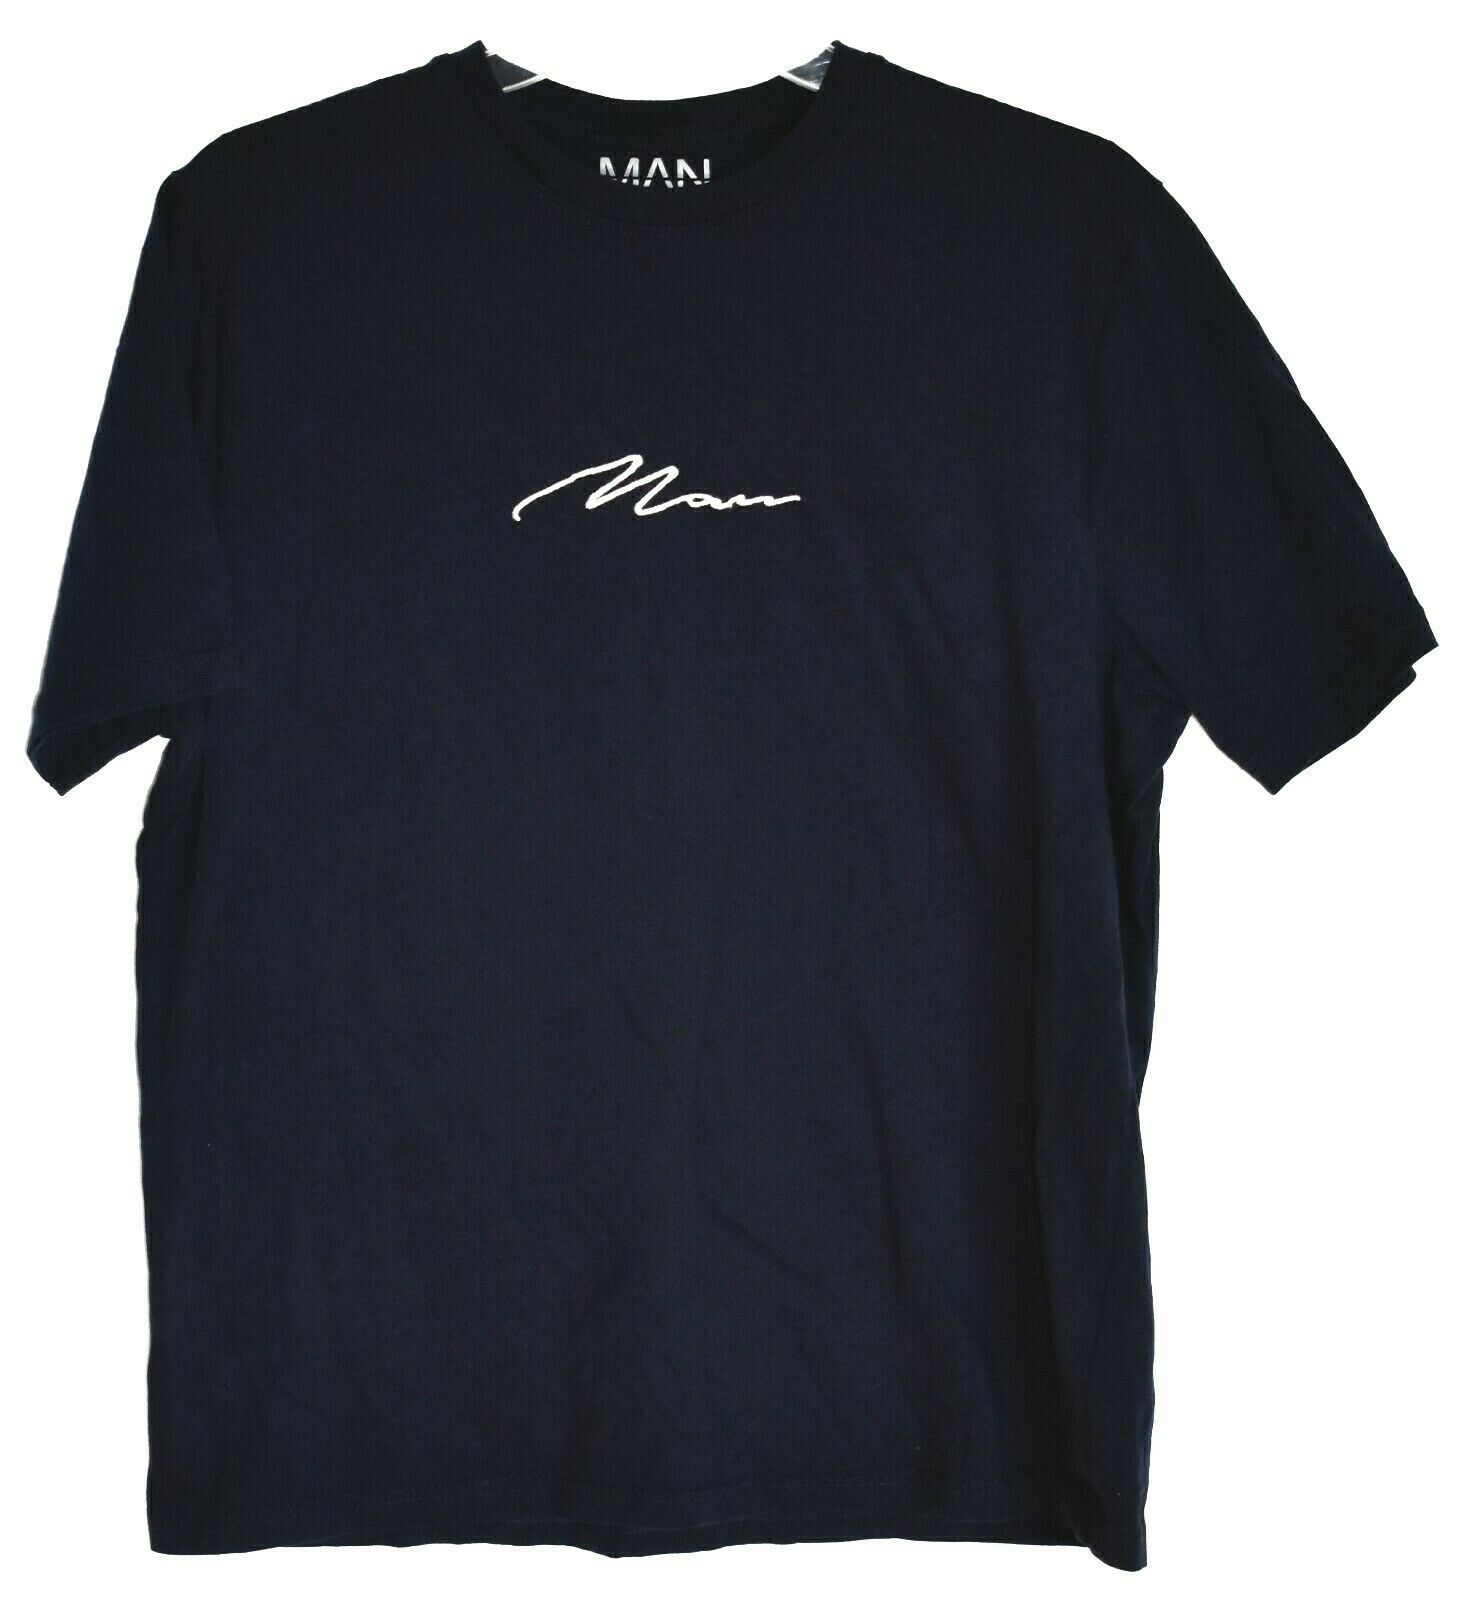 Boohoo Man boohooMAN Navy Blue Embroidered Crew Neck T-Shirt Size L